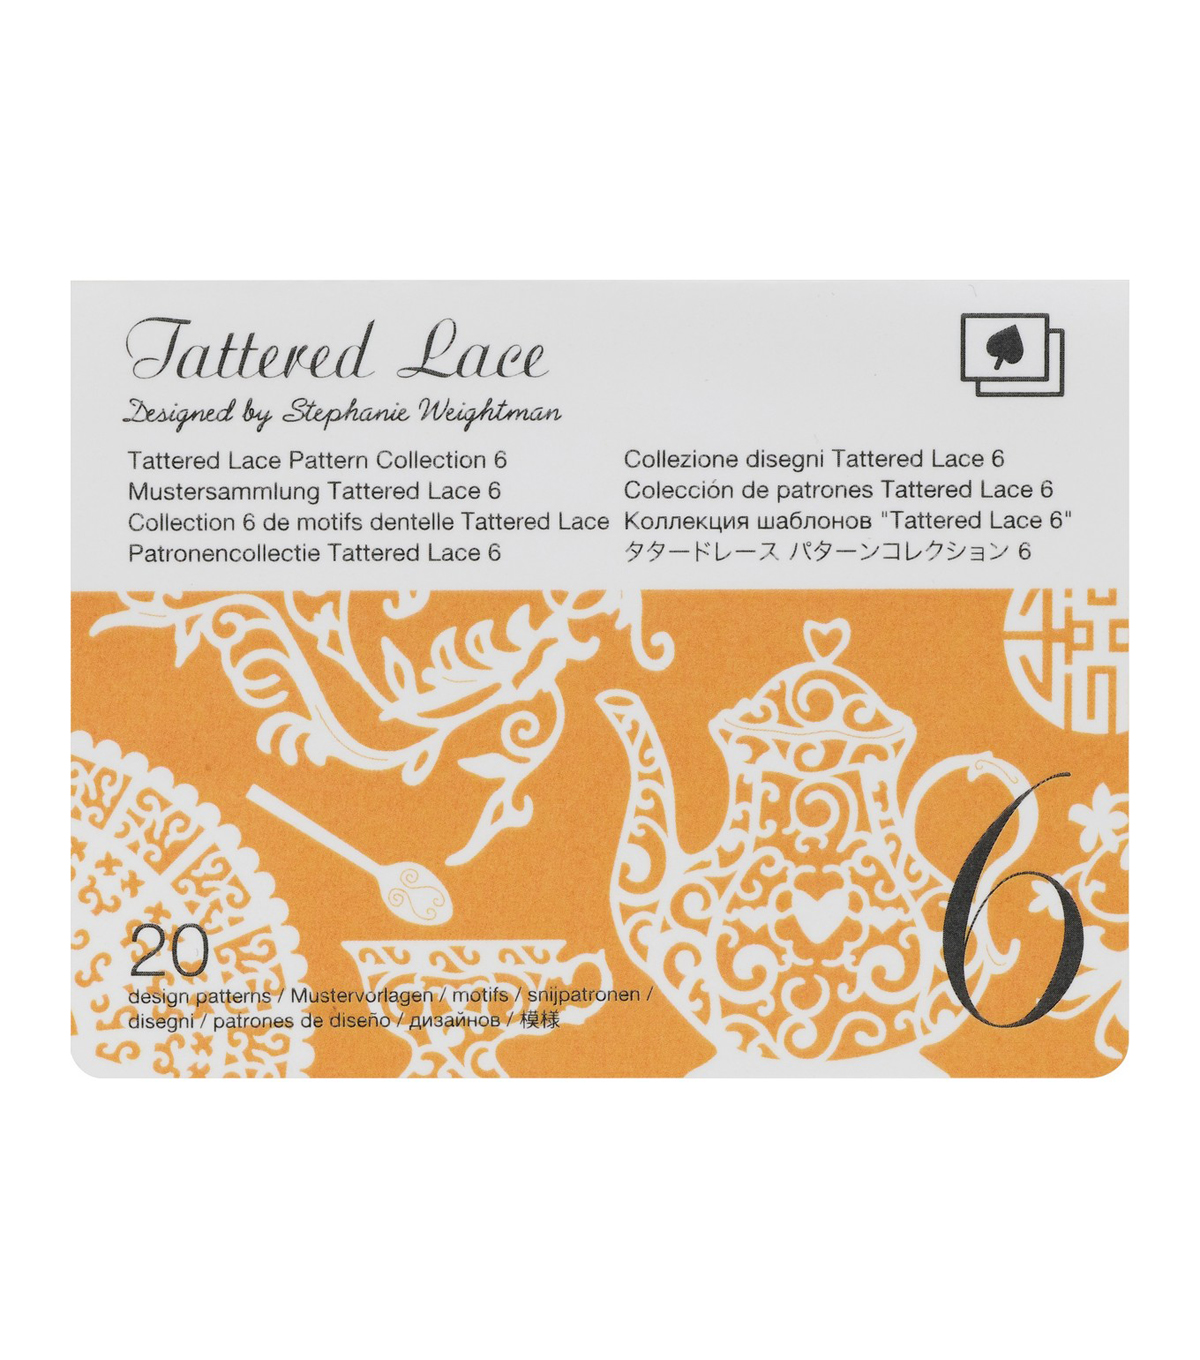 Brother ScanNCut SDX125 Tattered Lace Pattern-Collection 6